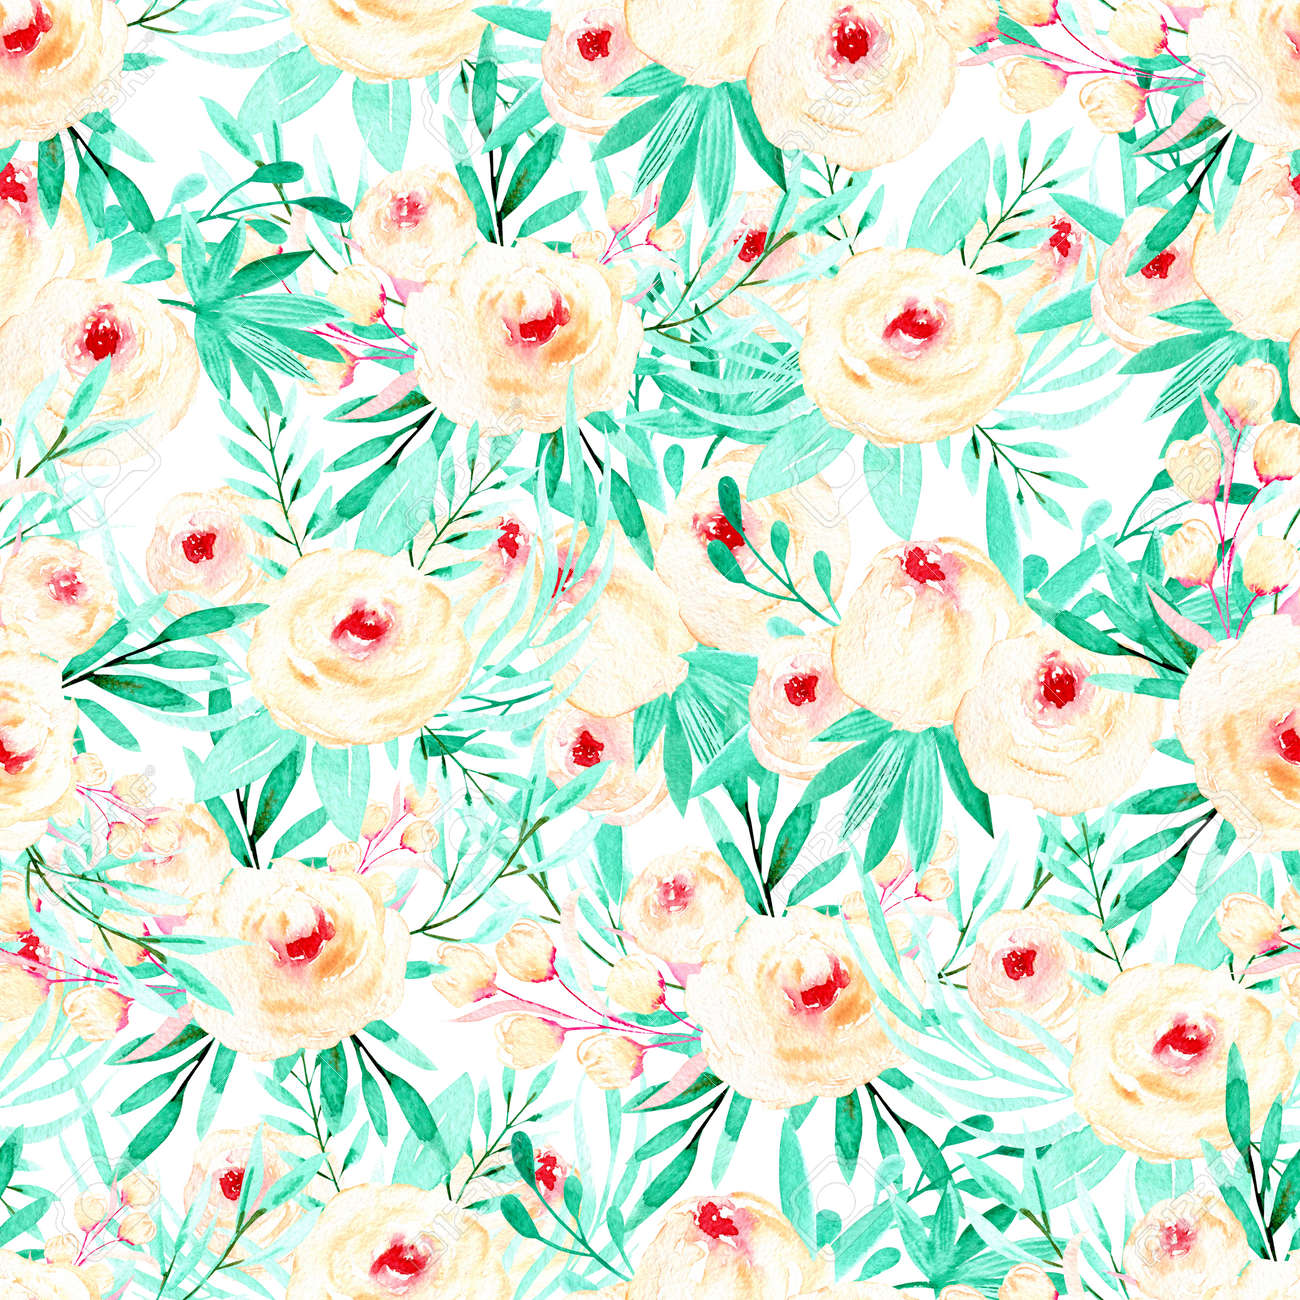 Seamless Floral Pattern With Watercolor Pink Roses And Mint Herbs